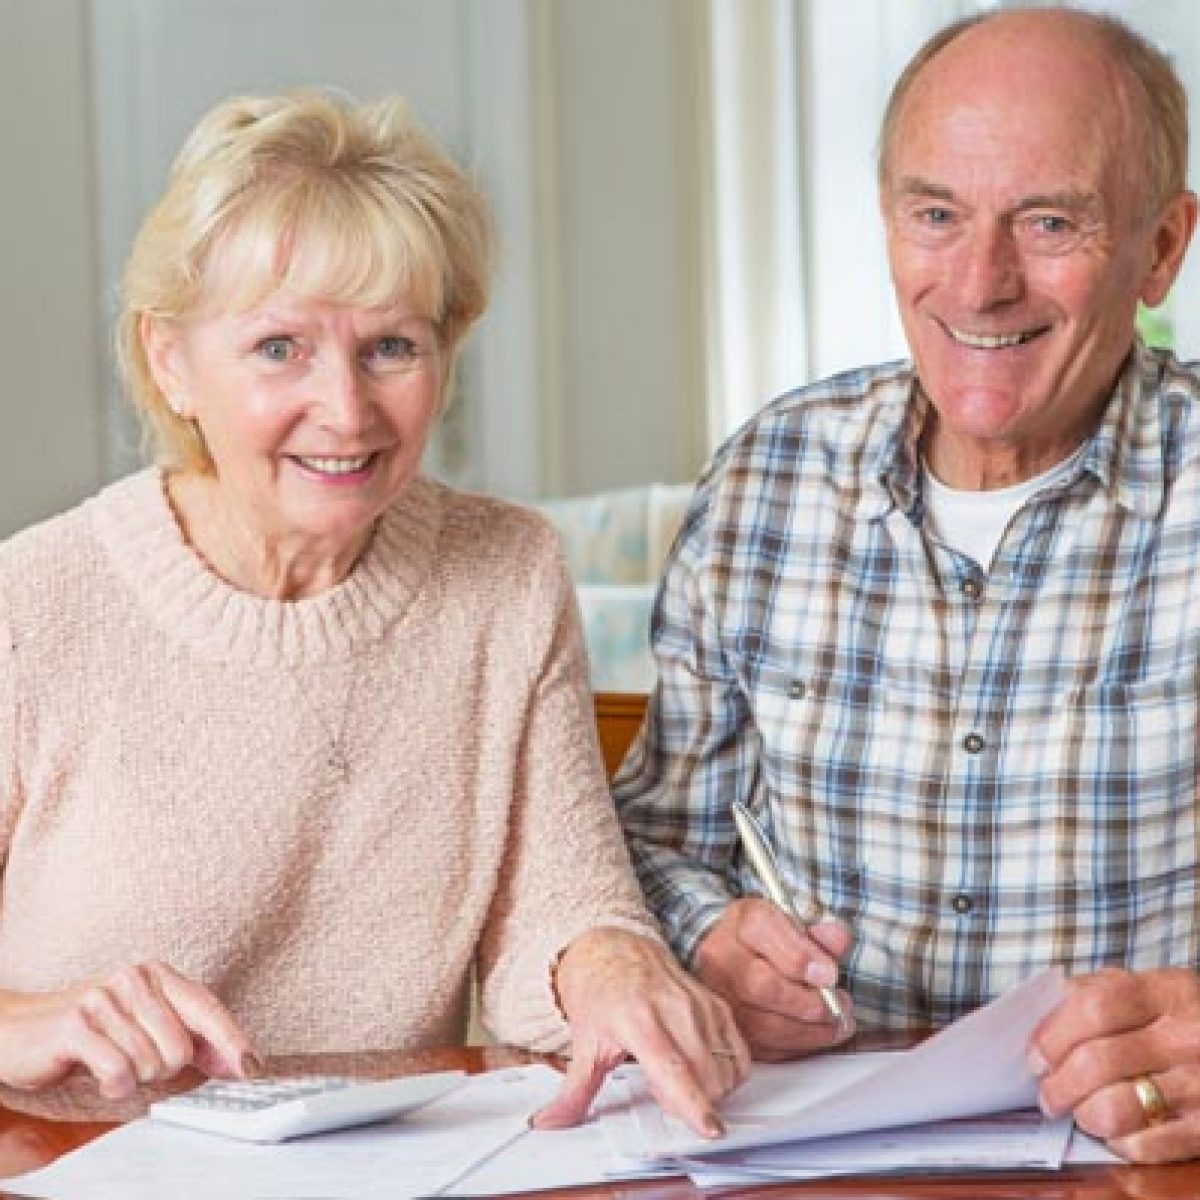 Retirement planning – should you sell your house?